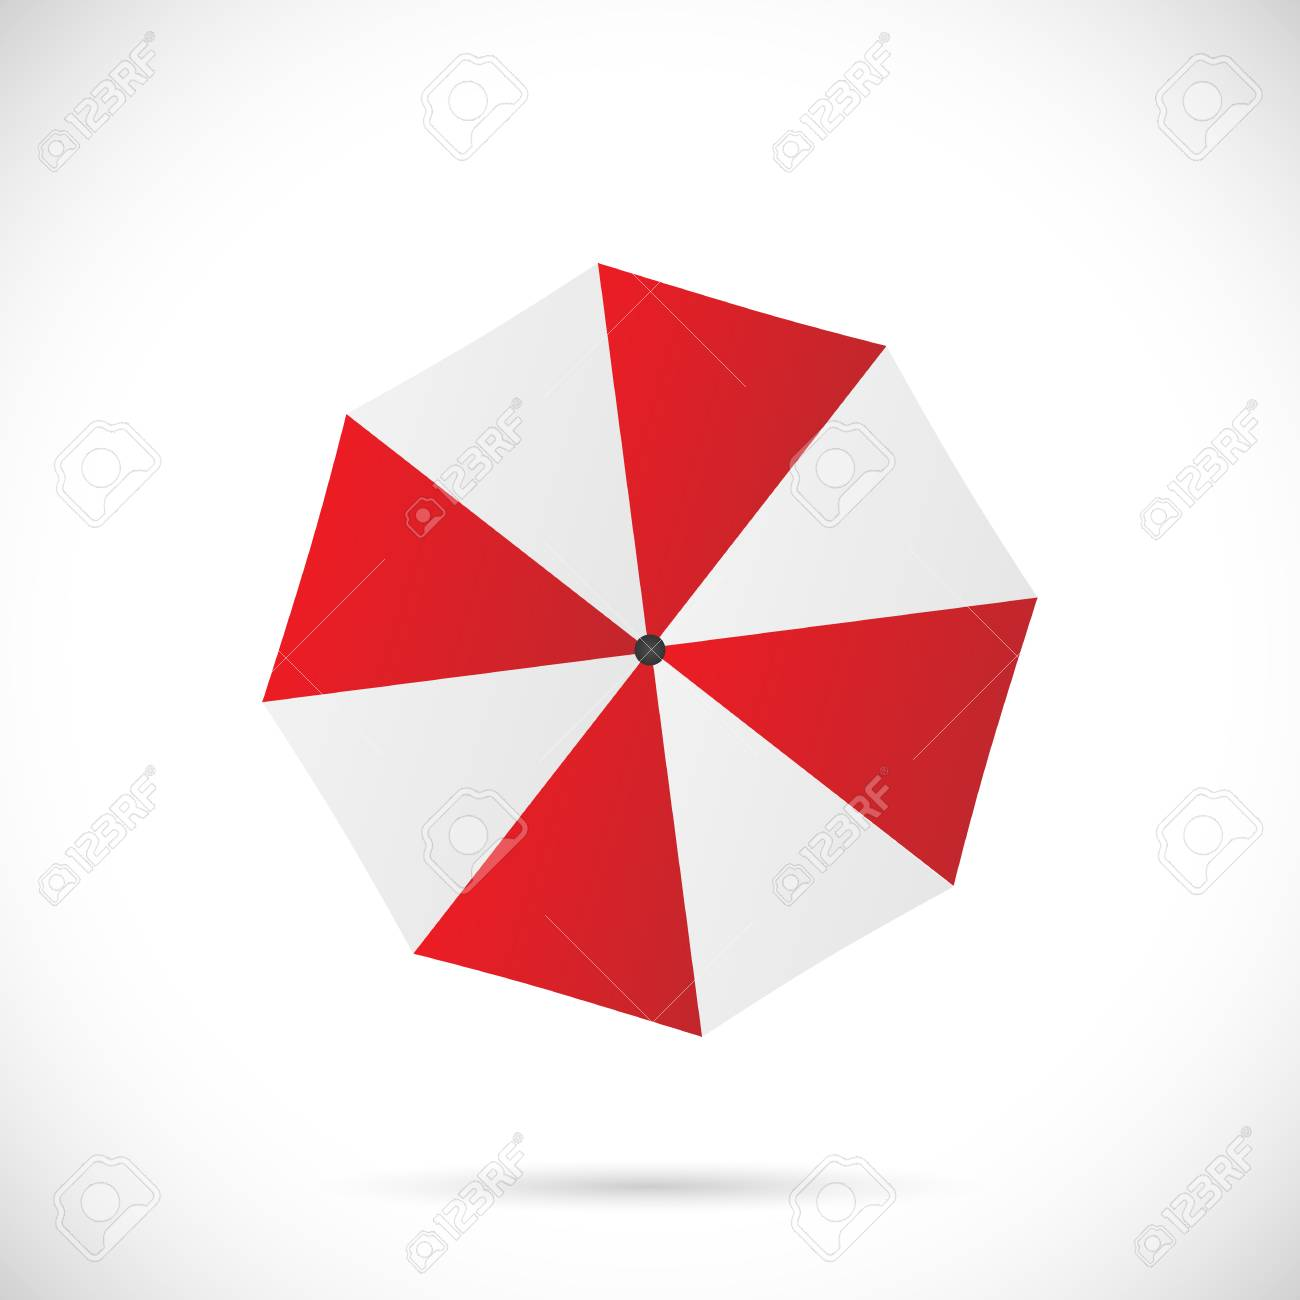 Illustration of an umbrella isolated on a white background. - 97016083